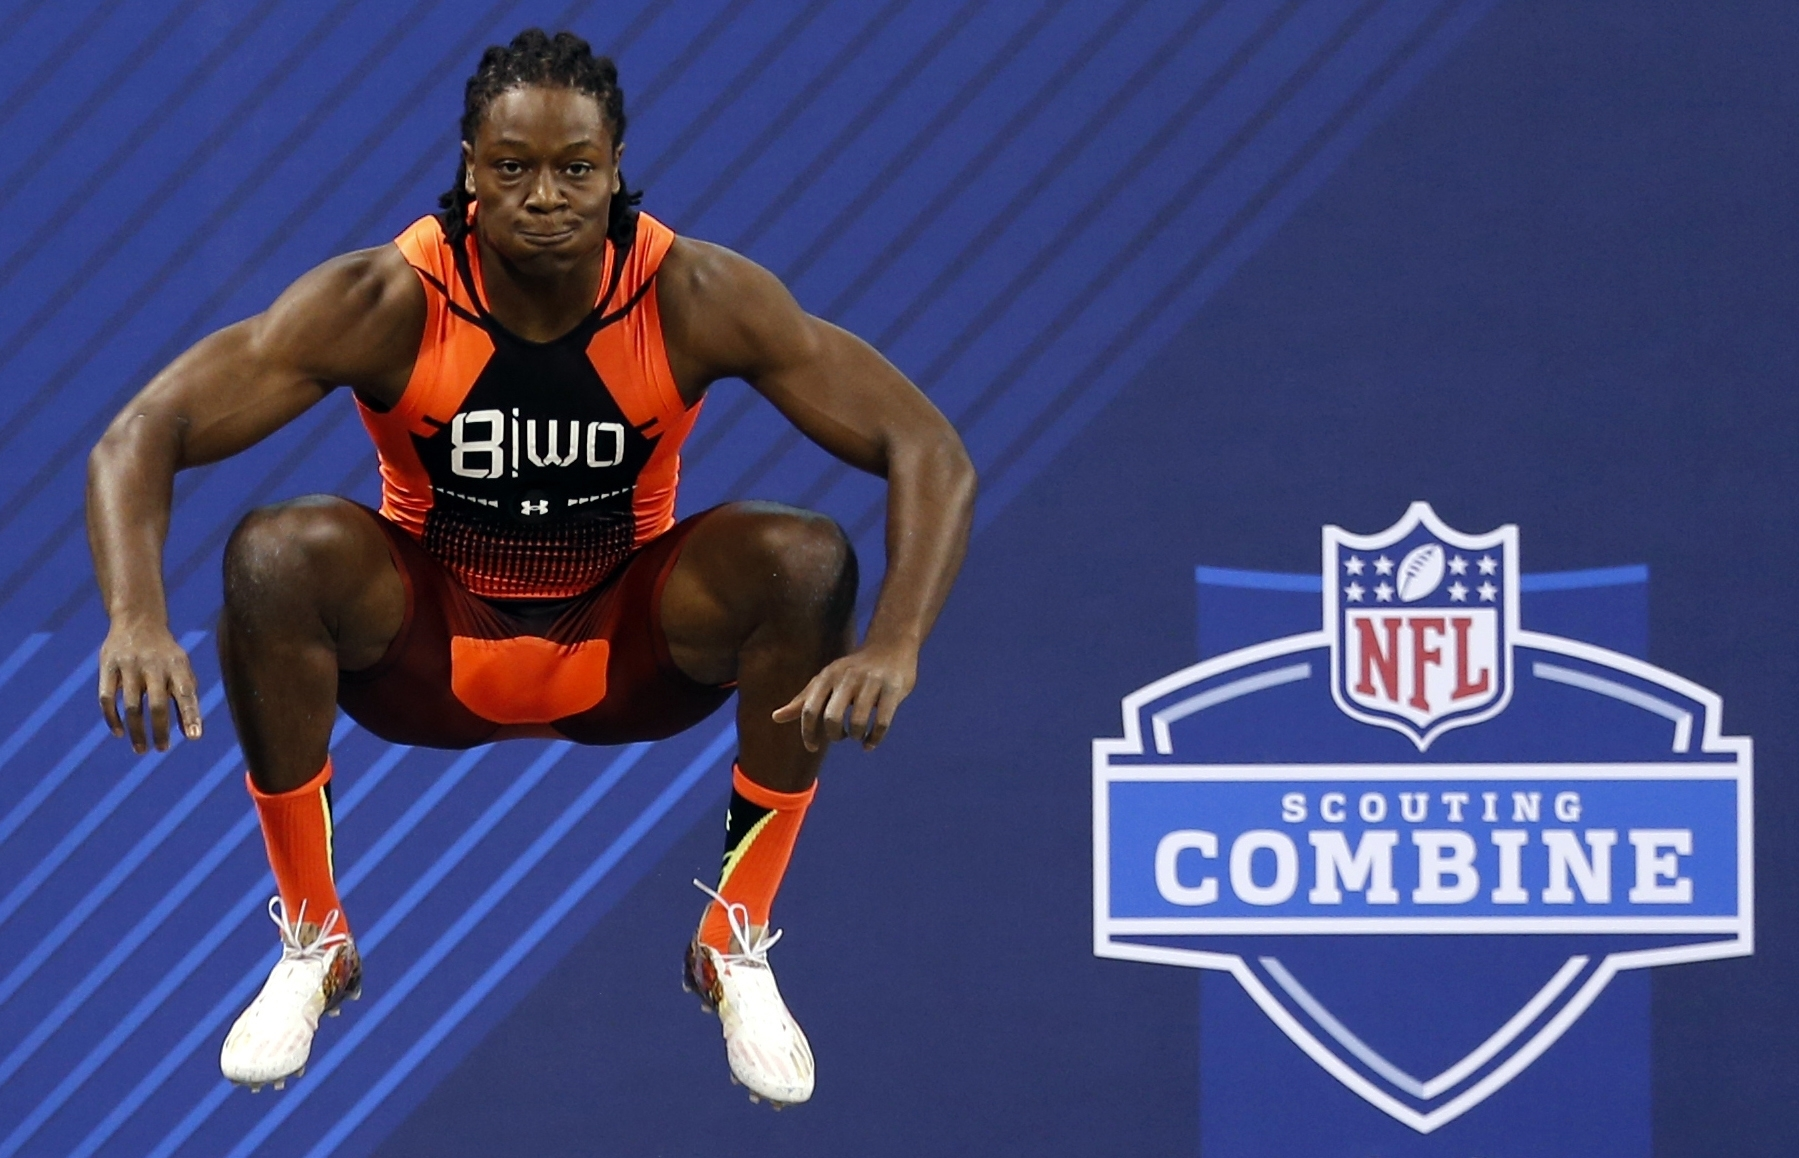 FILE - In this Feb. 21, 2015, file photo, Georgia wide receiver Chris Conley prepares to run the 40-yard dash at the NFL football scouting combine in Indianapolis. I know a couple of people in college who did the high jump and they have some springs, man,